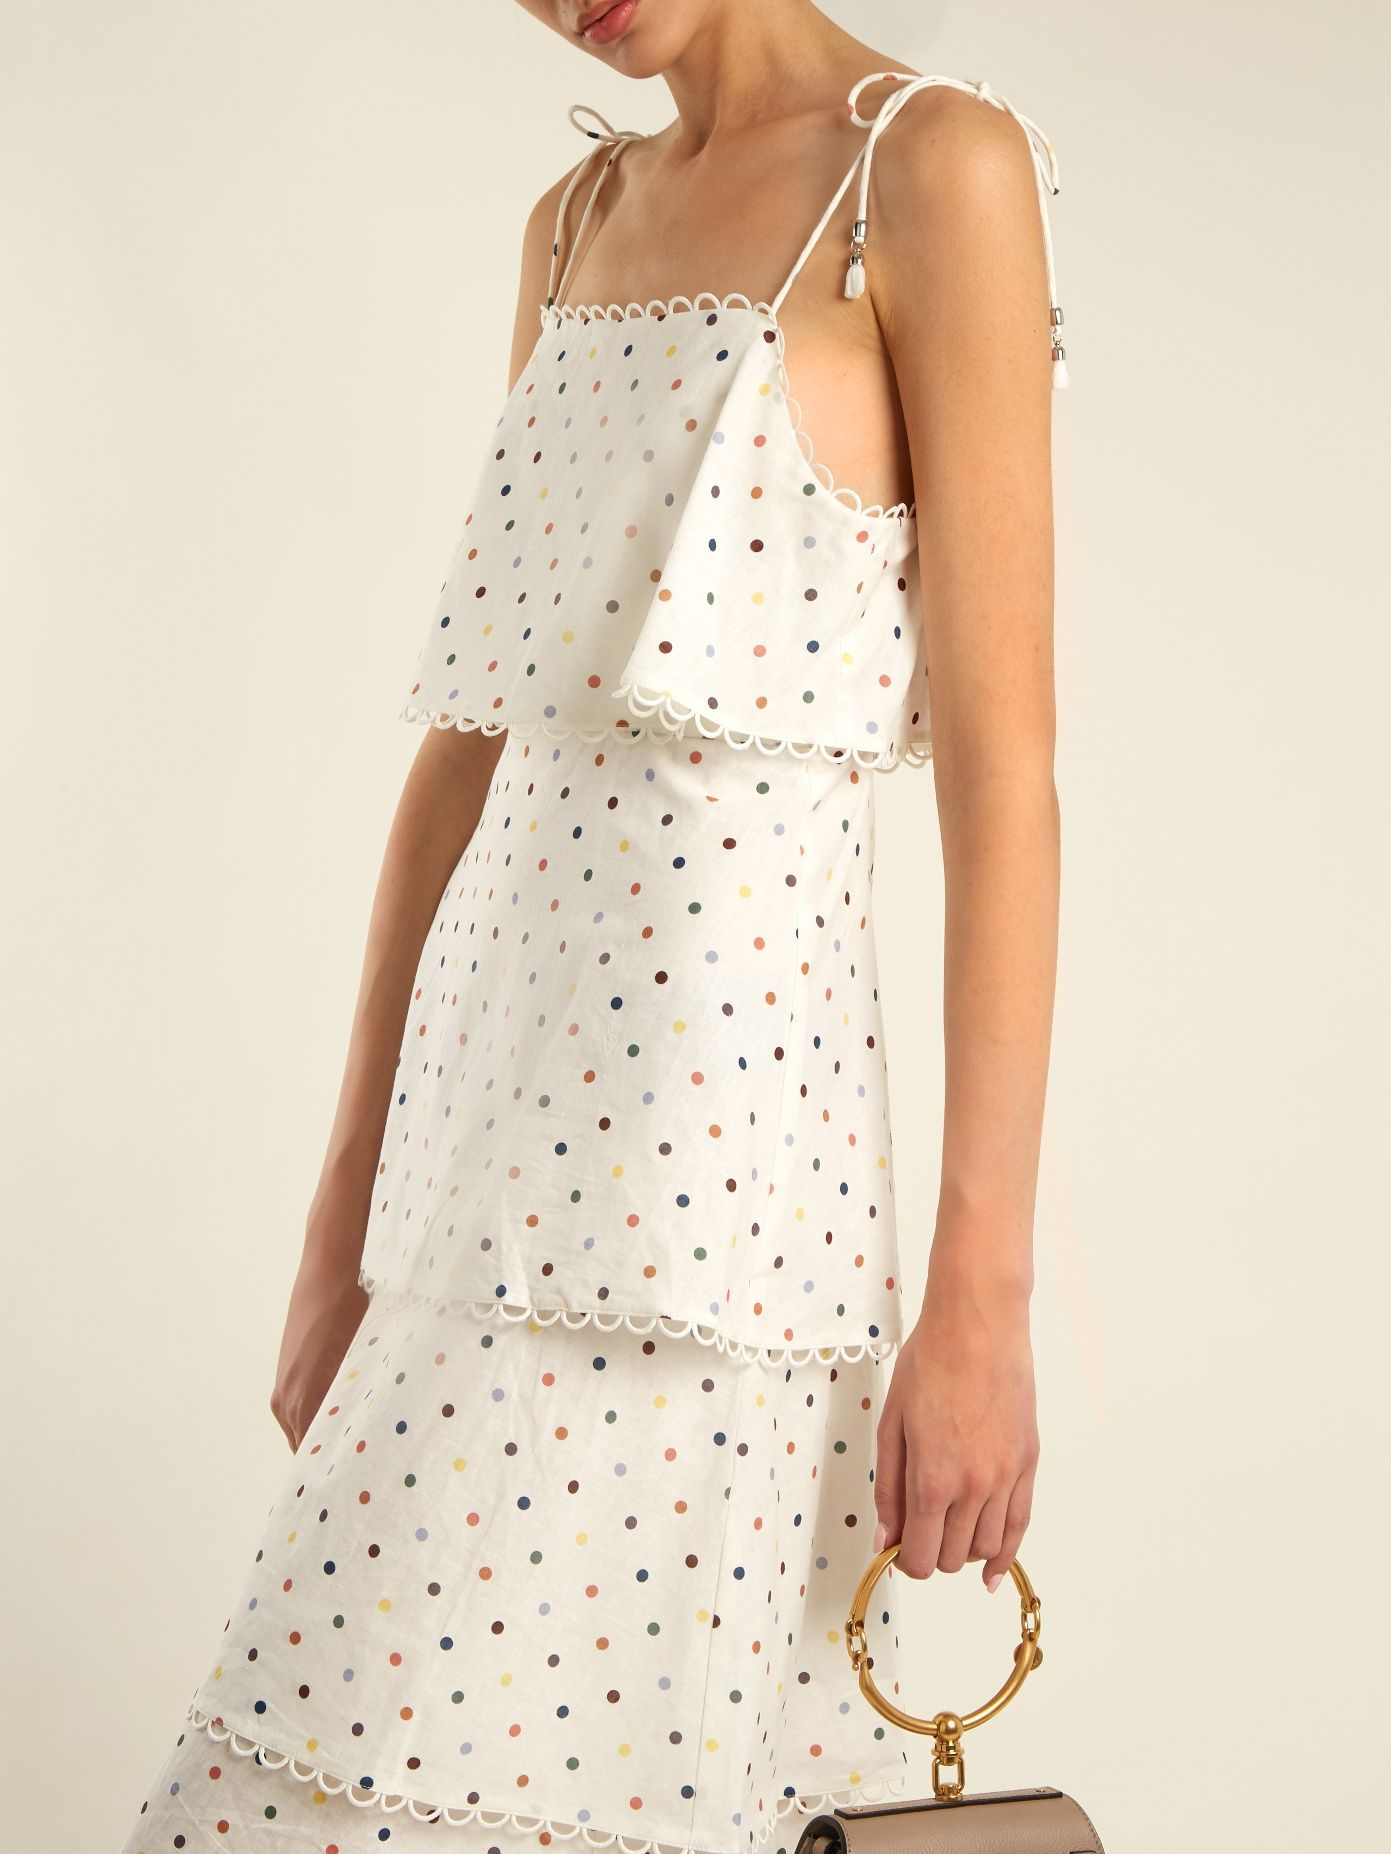 dcd8ef30df92 Click here to buy Zimmermann Polka-dot print linen and cotton-blend dress  at MATCHESFASHION.COM